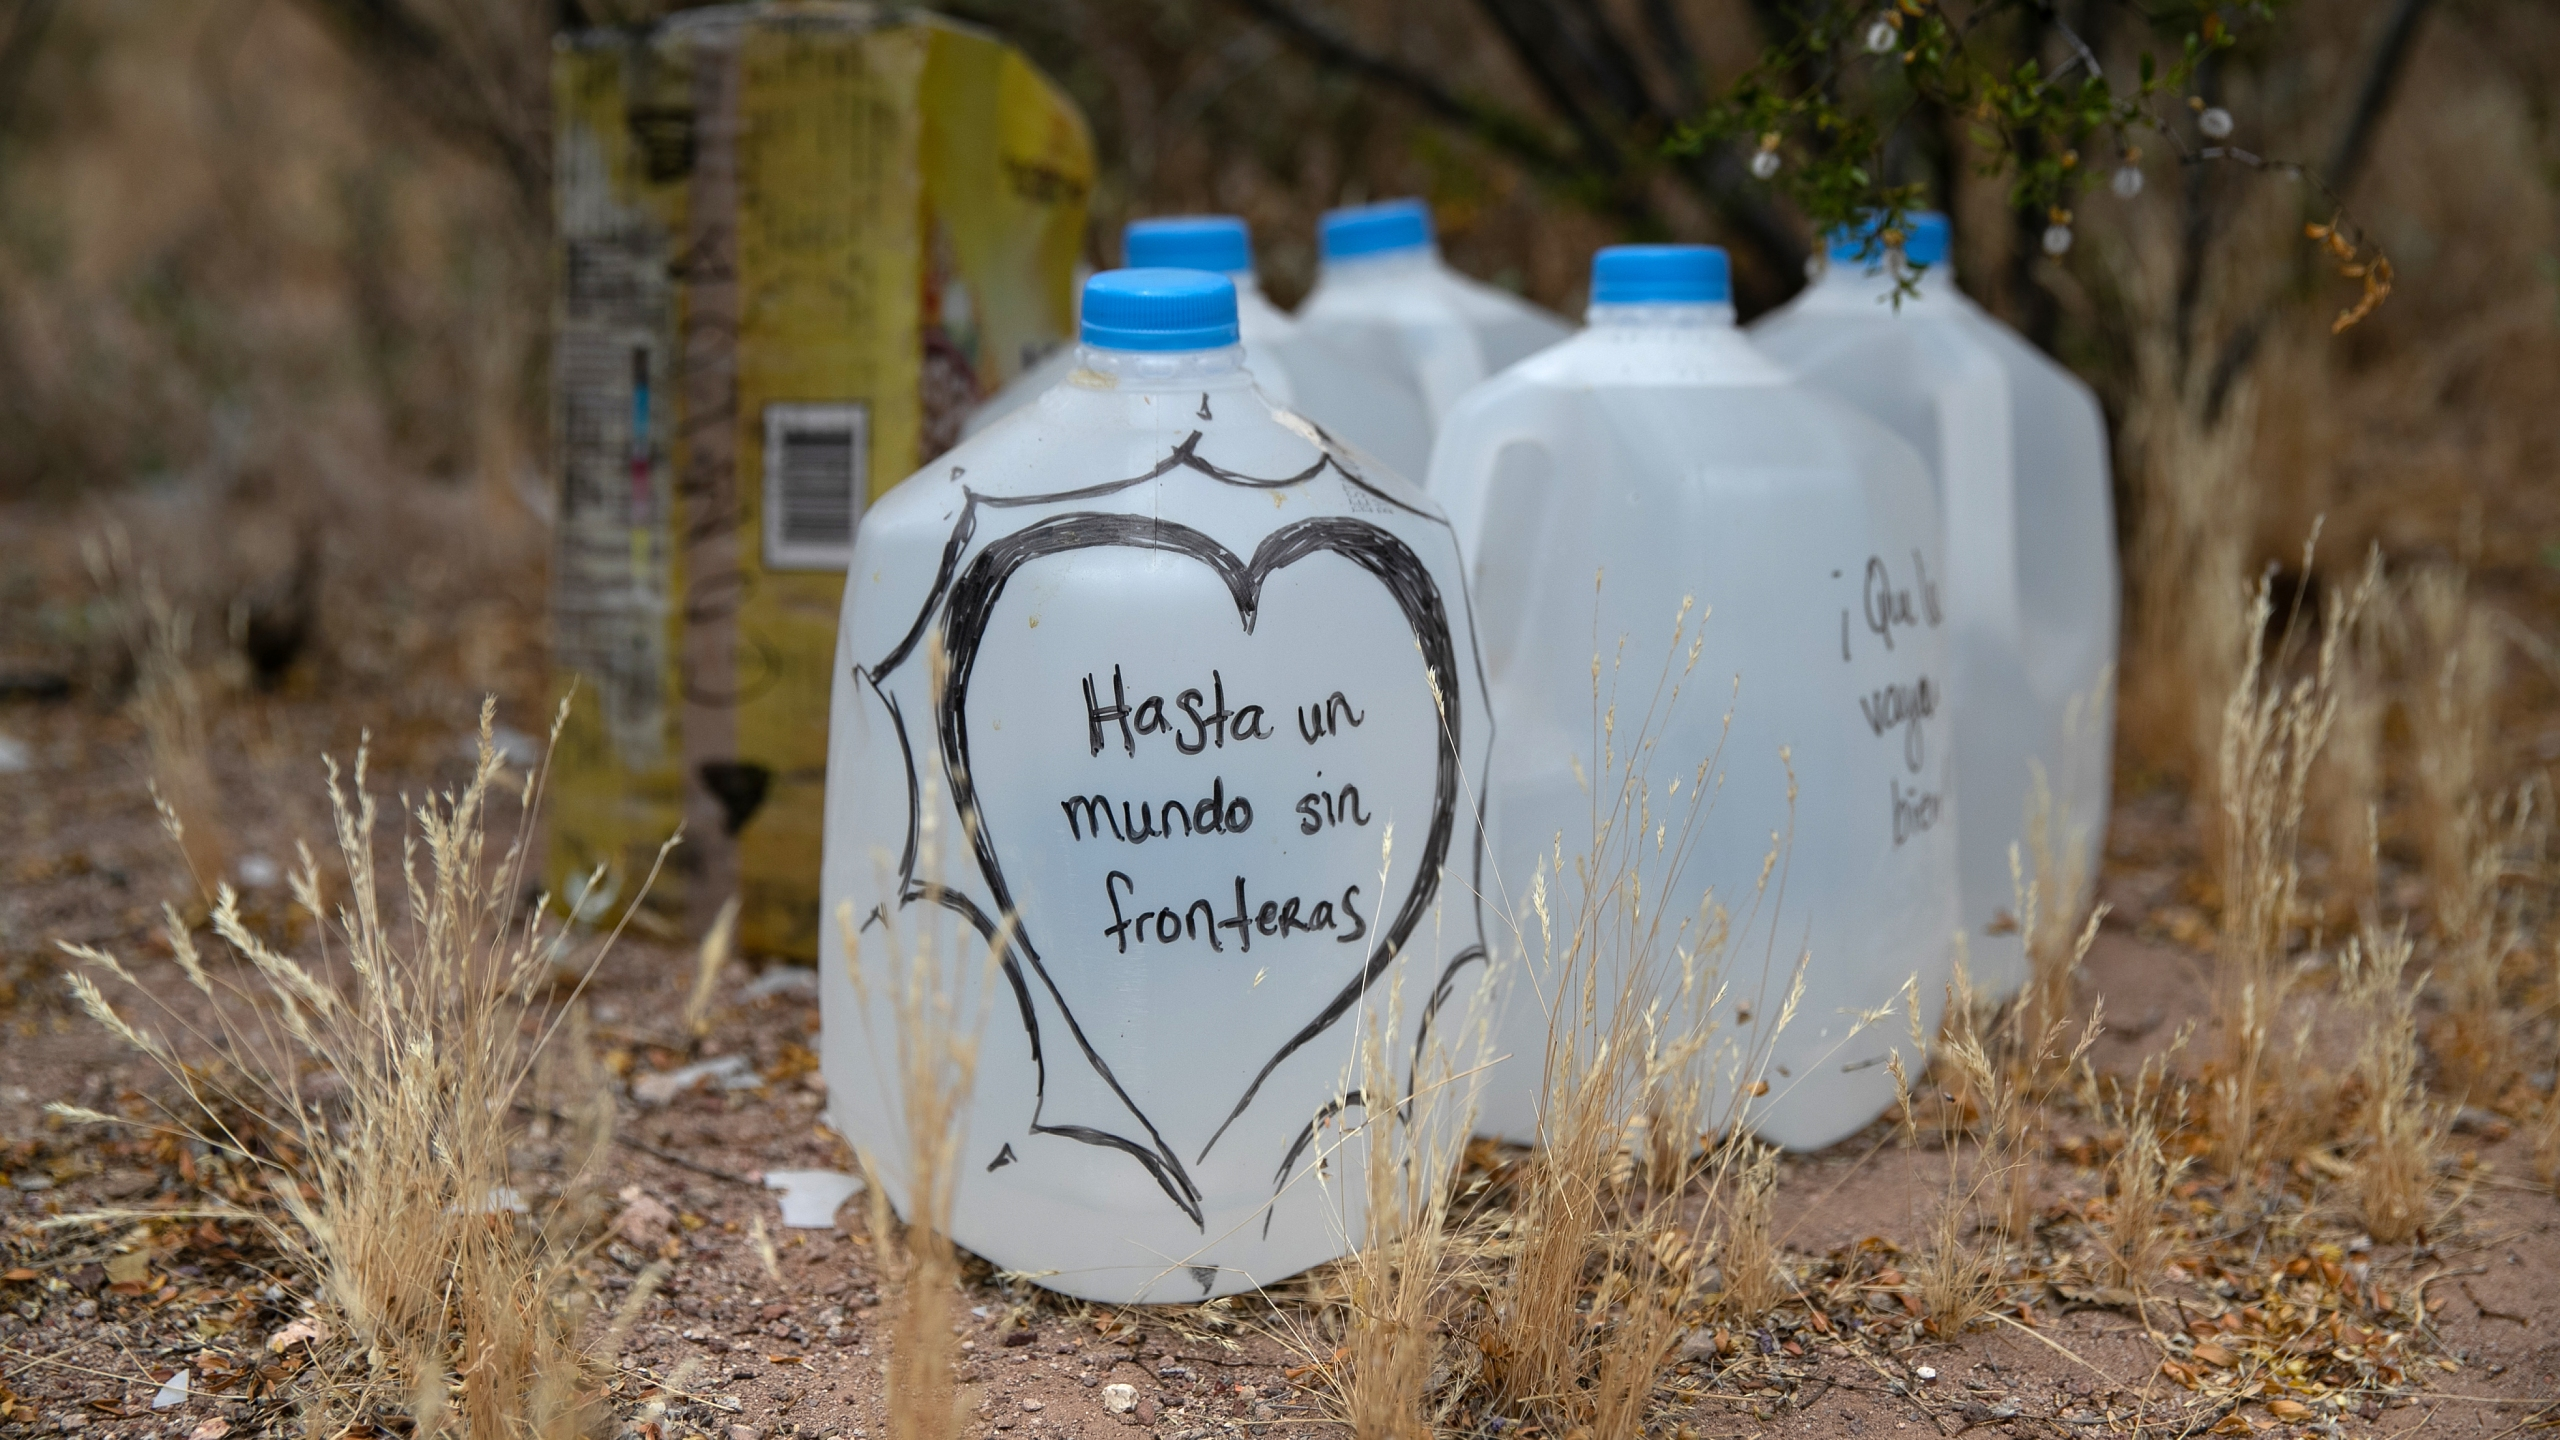 Jugs of water for undocumented immigrants sit along migrant trails near Ajo, Arizona, after being delivered by humanitarian volunteers with No More Deaths on May 10, 2019. (Credit: John Moore / Getty Images)